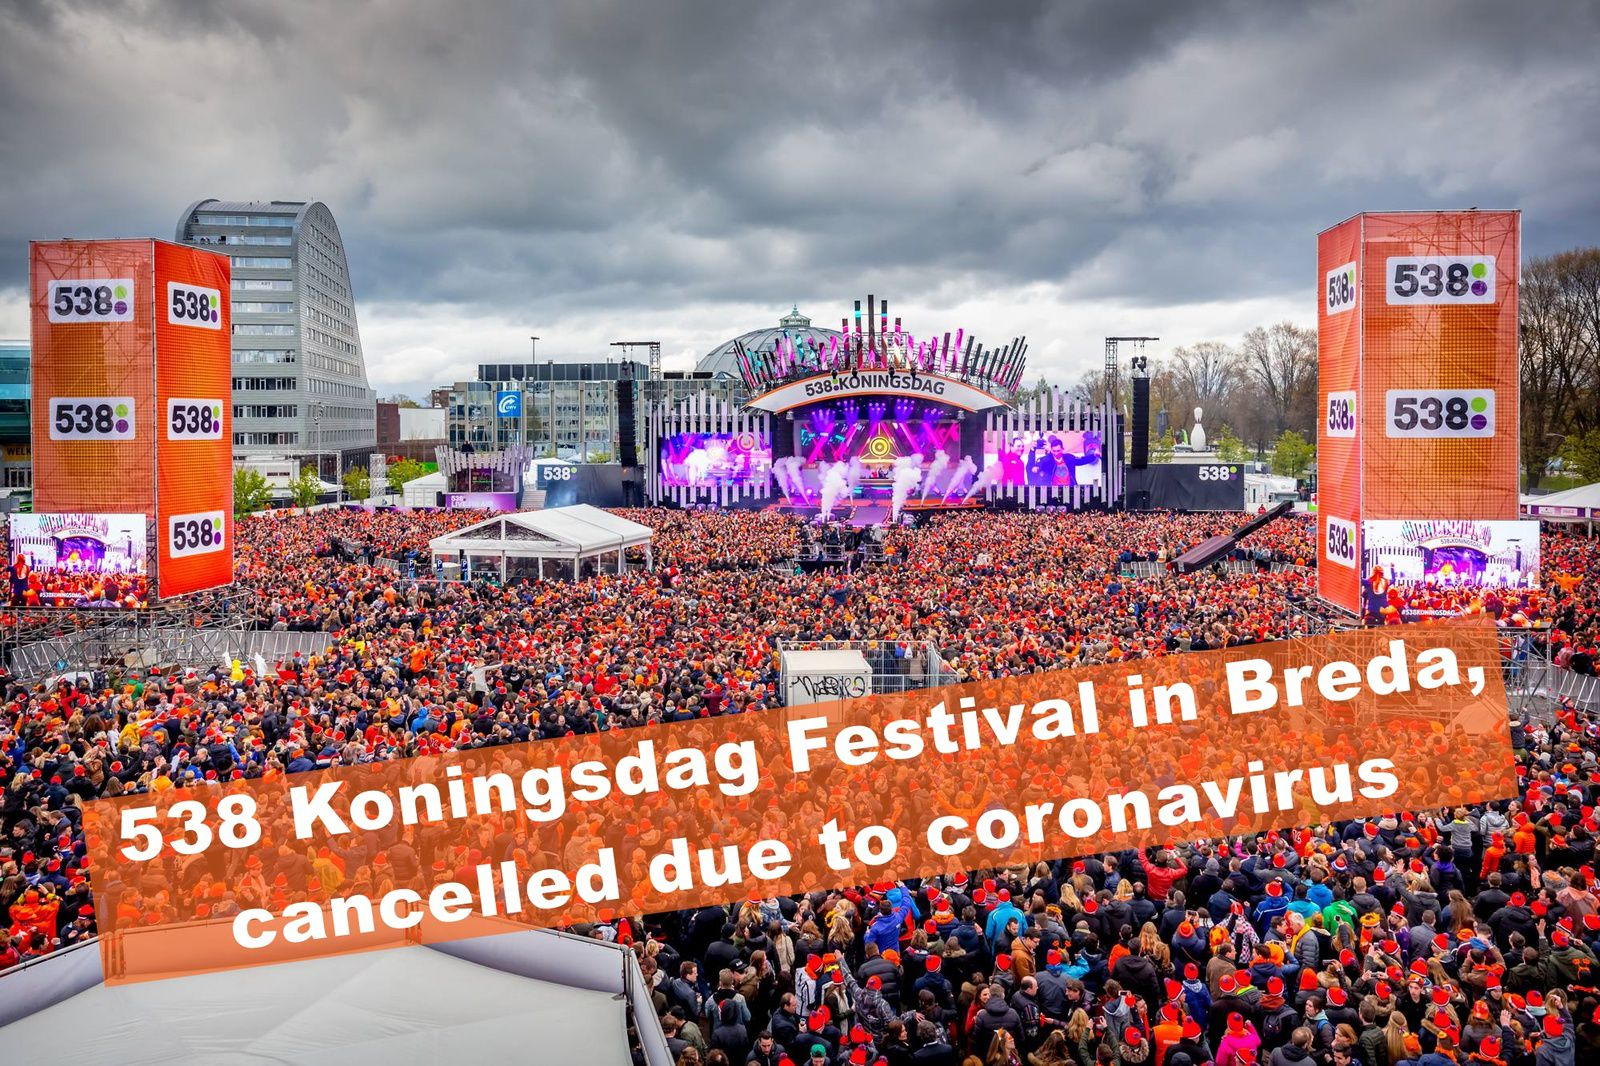 ⚠ 538 Koningsdag Festival in Breda, cancelled due to coronavirus ⚠